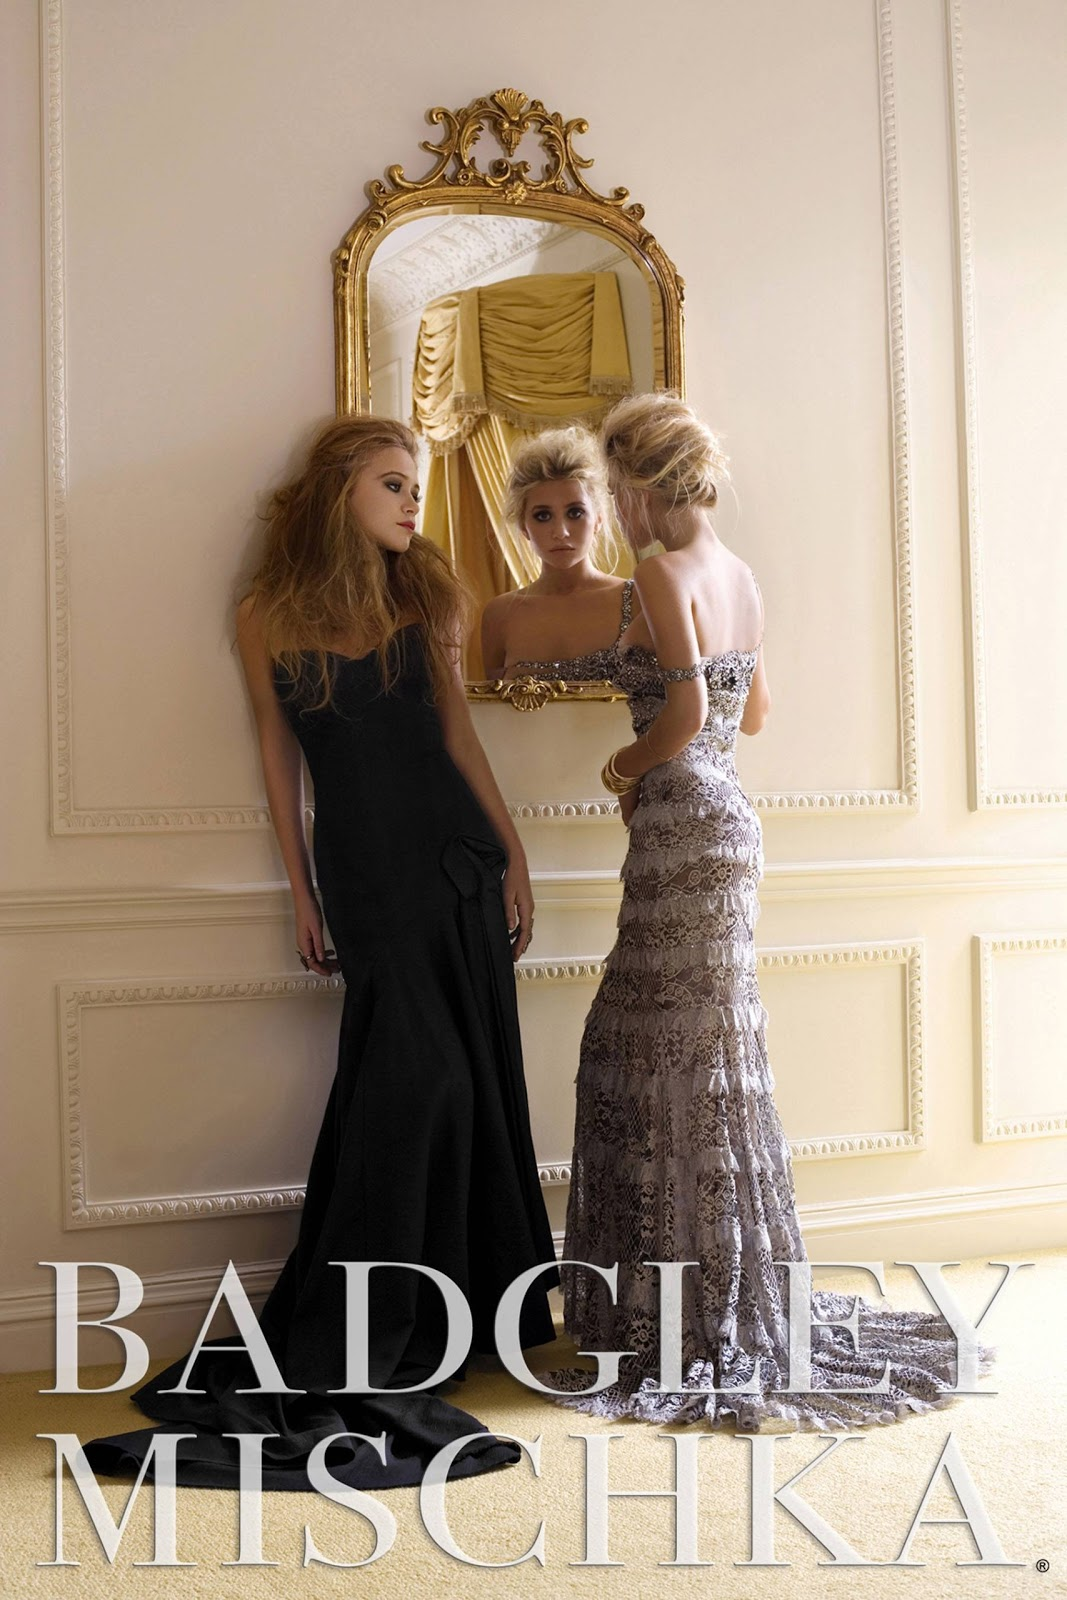 http://2.bp.blogspot.com/-7-KBHe1_19w/TfBpFZVkW8I/AAAAAAAAKko/IvGdMdwUqE0/s1600/mary-kate-ashley-olsen-badgley-mischka-ad-hq-01.jpg